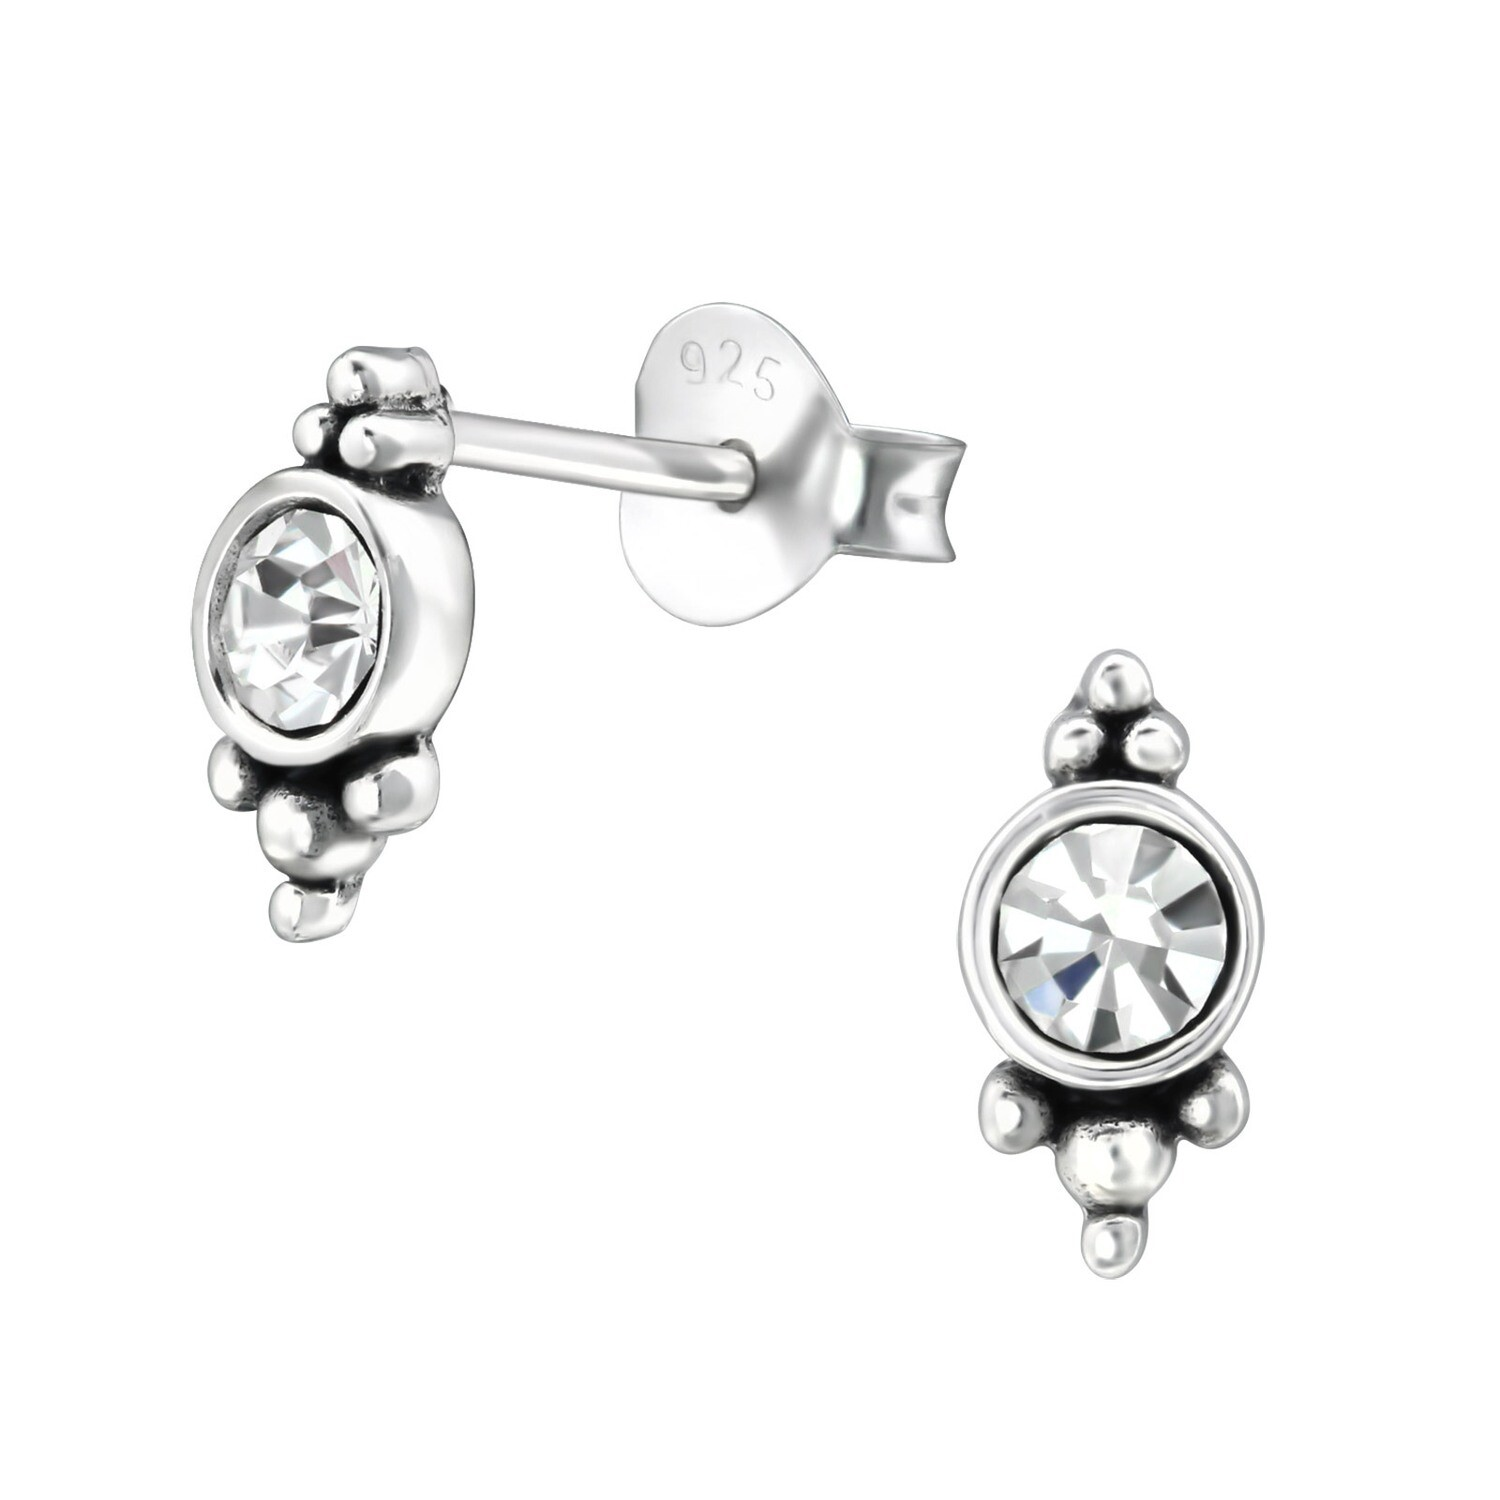 P36-49 Sterling Silver Antiqued Bali Crystal Posts